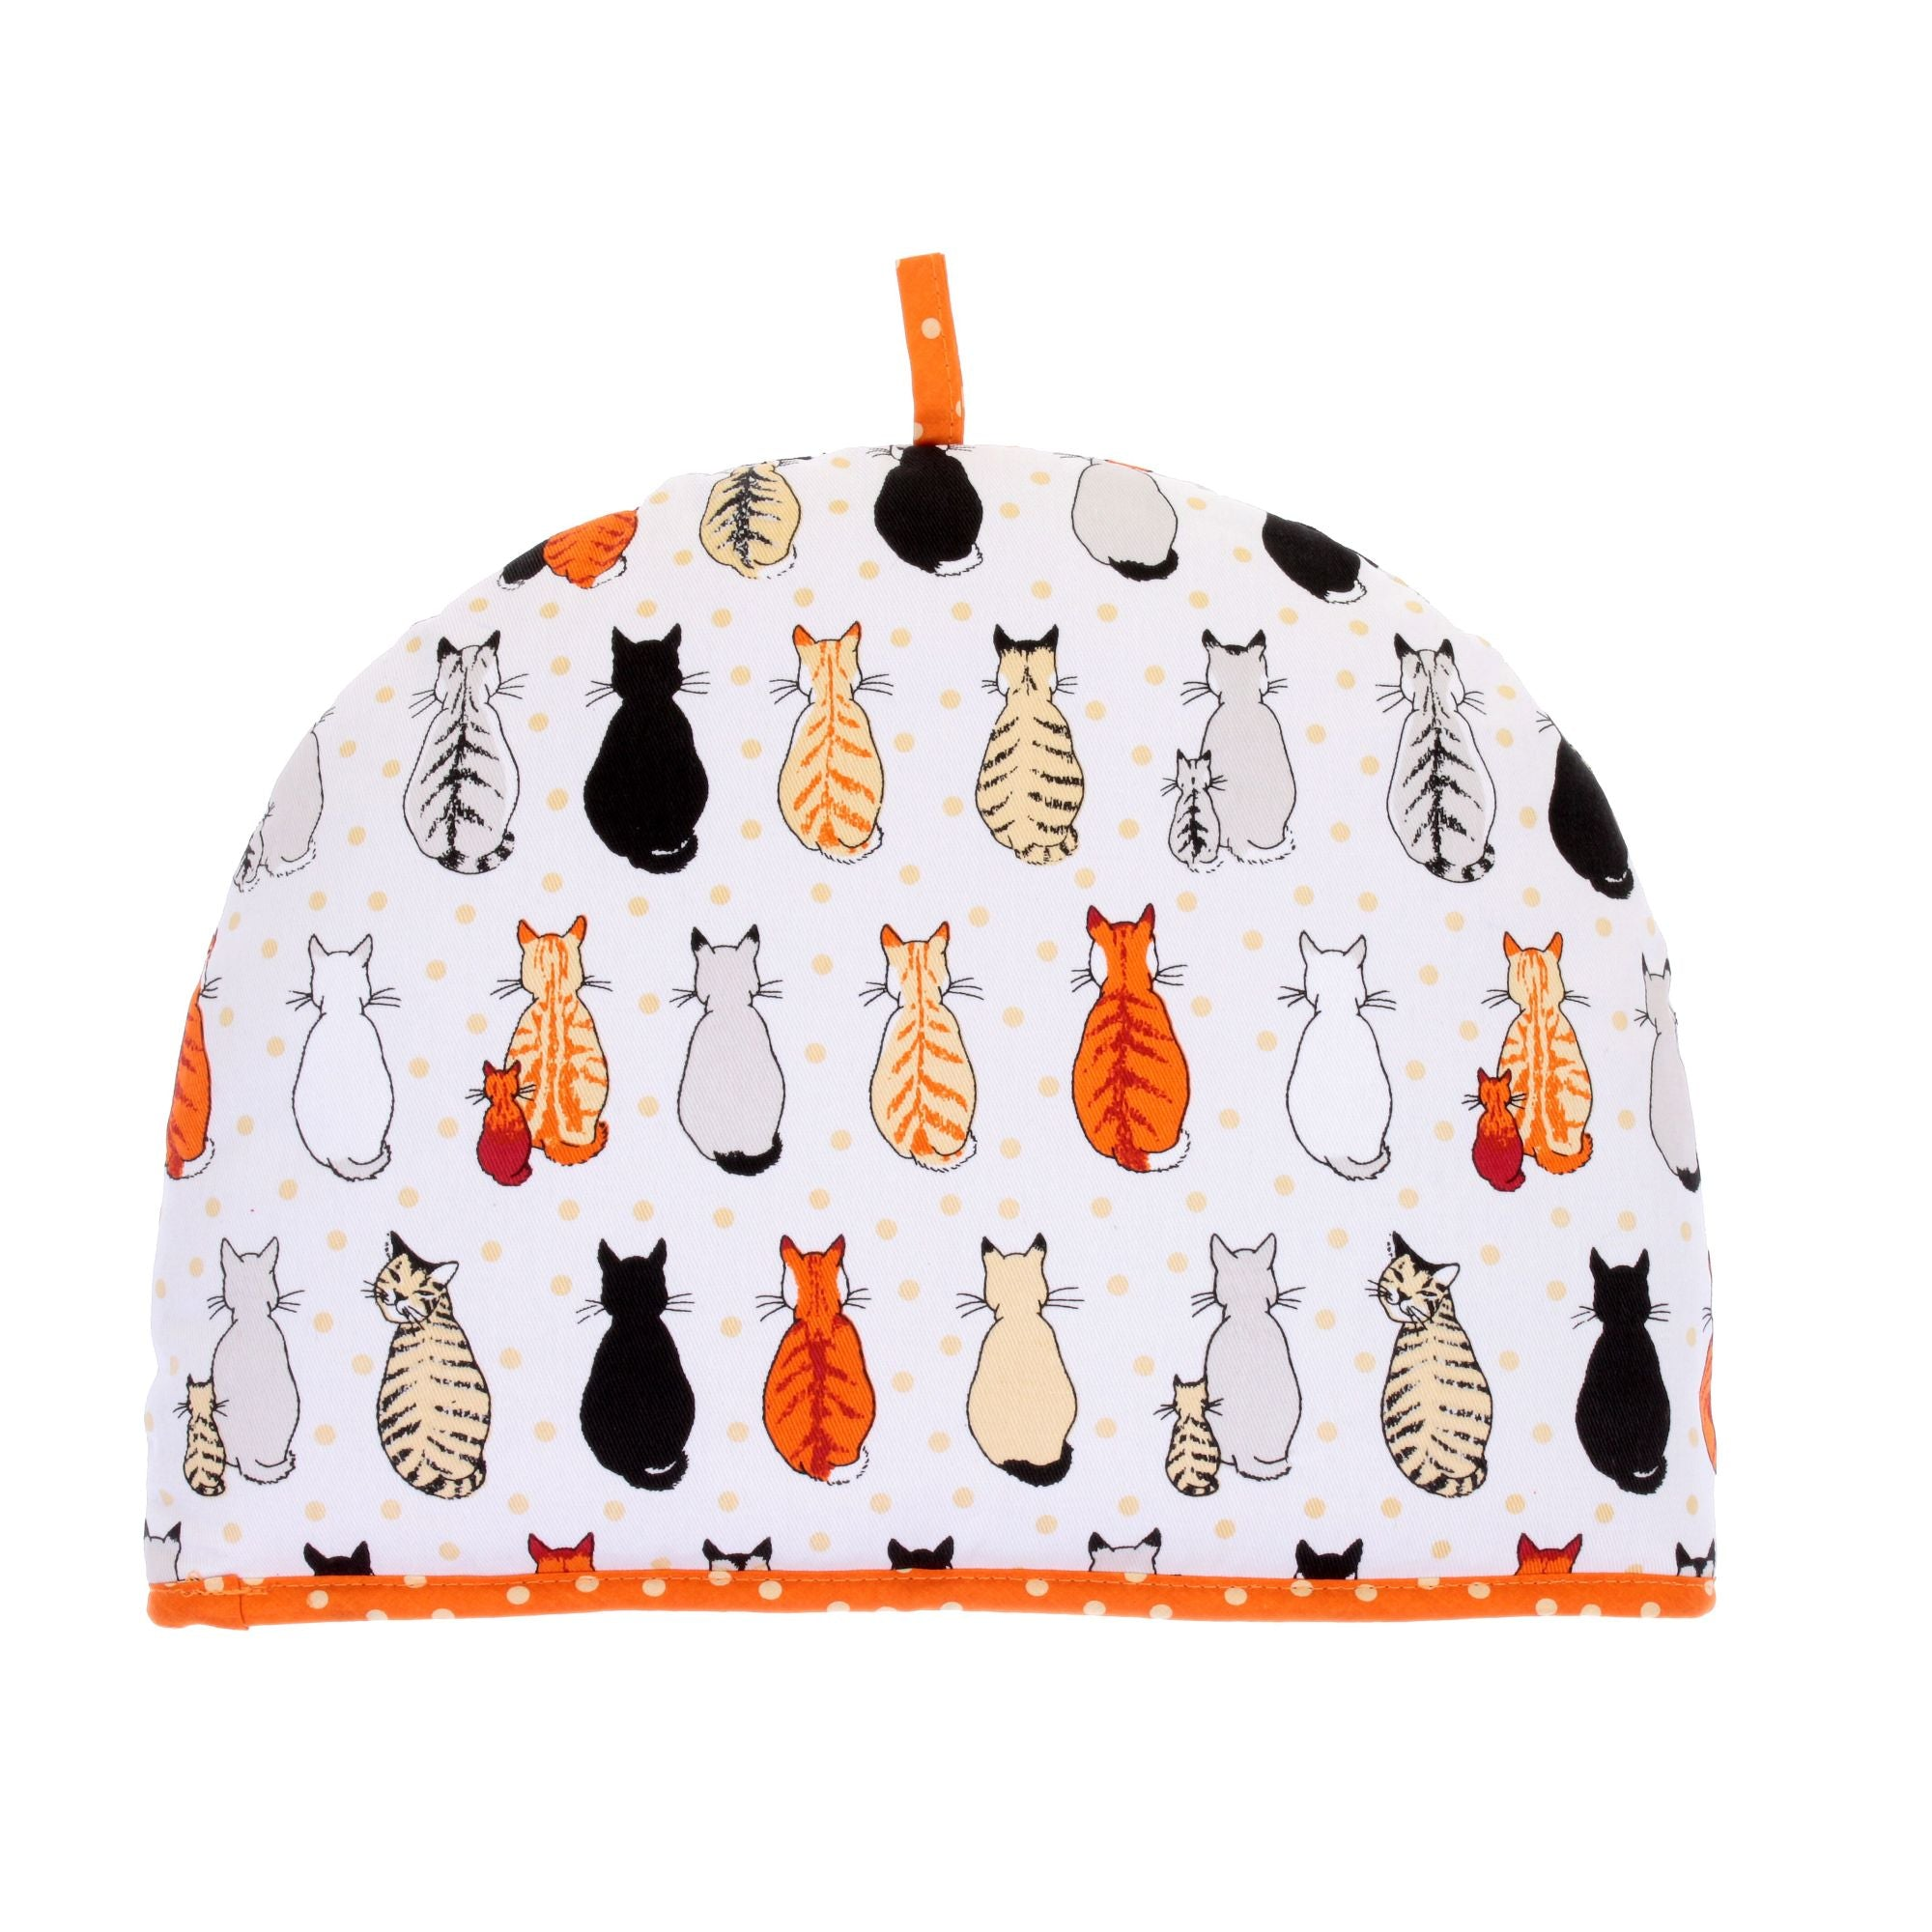 Cats in Waiting traditional tea cosy by Ulster Weavers